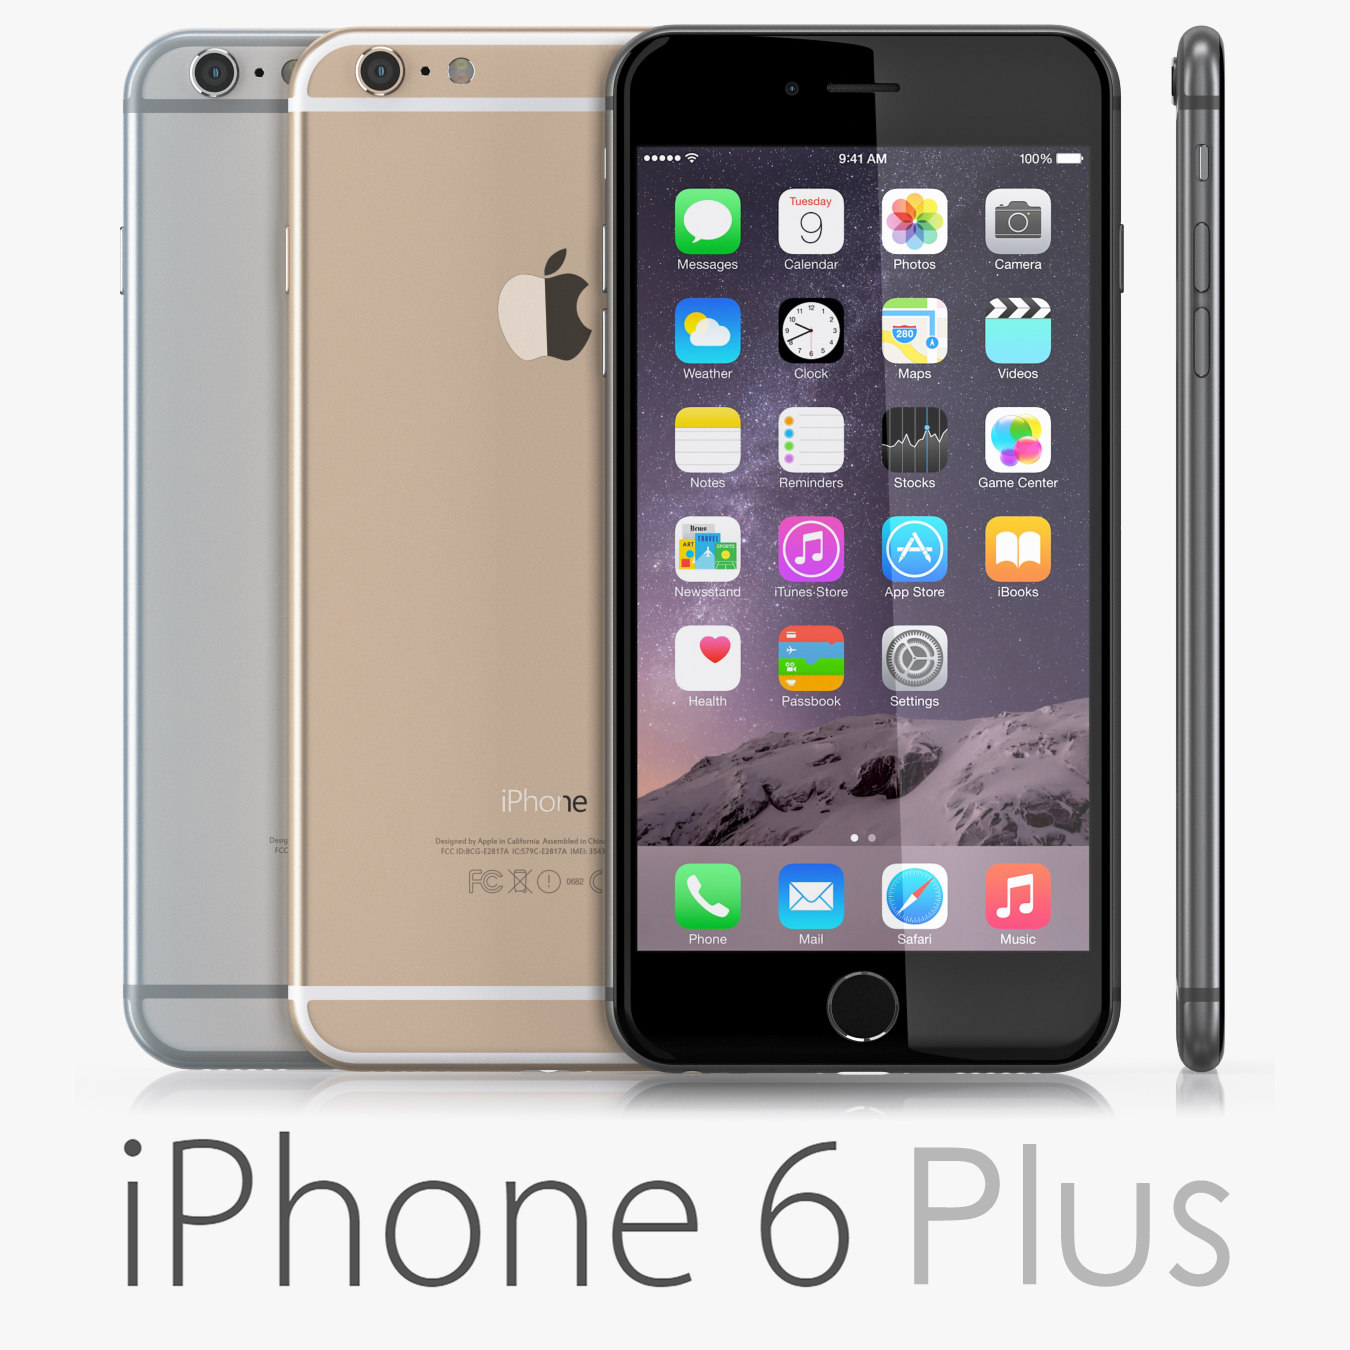 iphone_6_plus_all_01.jpg